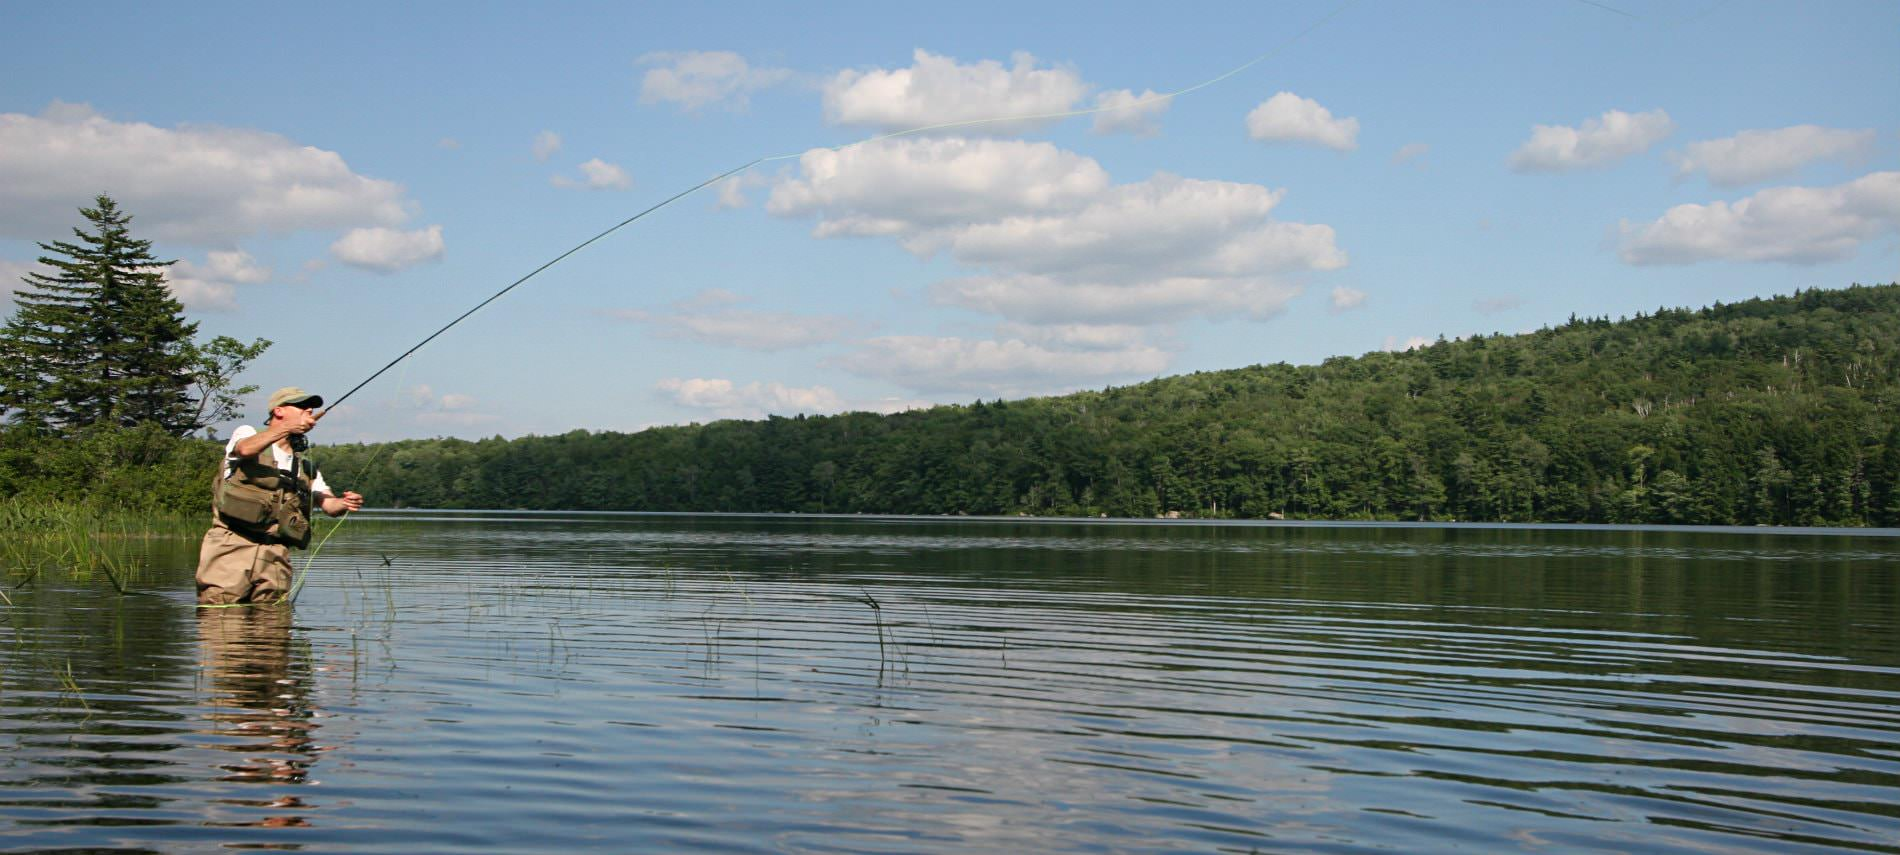 Man wearing waders standing in a  body of water fly fishing surrounded by trees